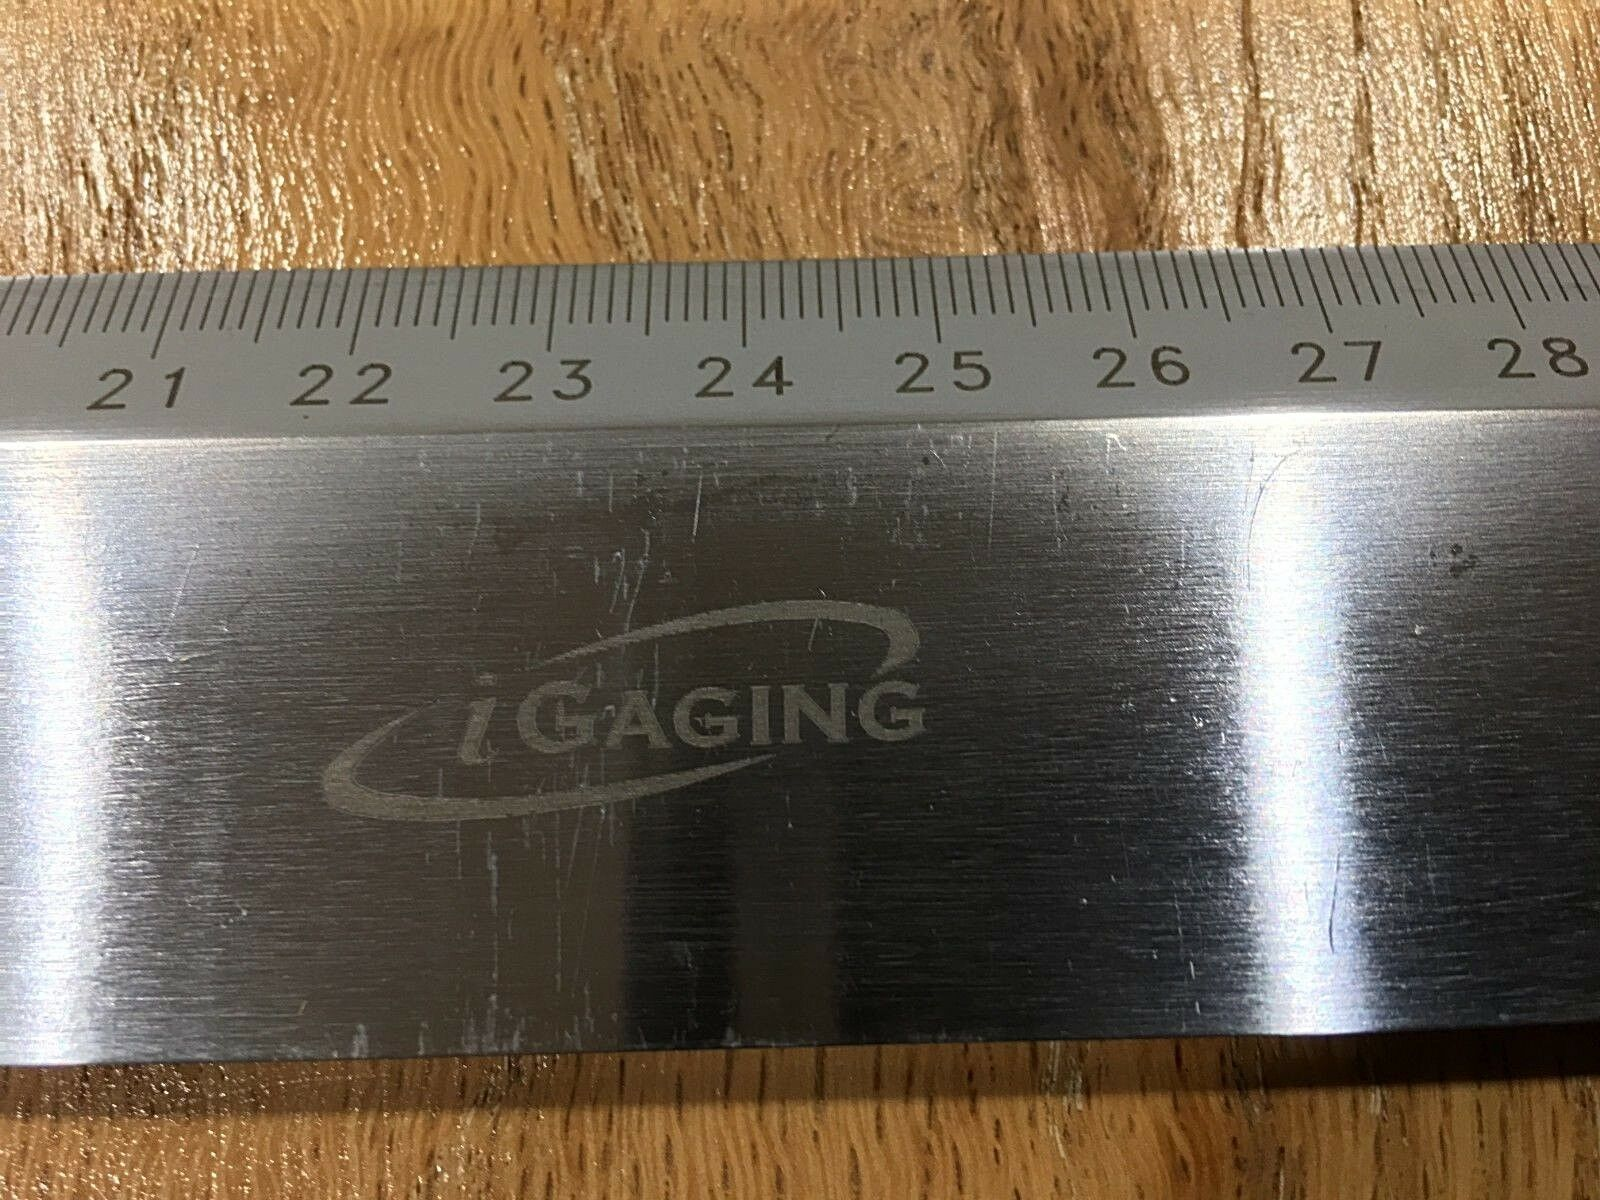 900mm iGaging Precision Straight Edge with Ruler (36-036-KS-M)